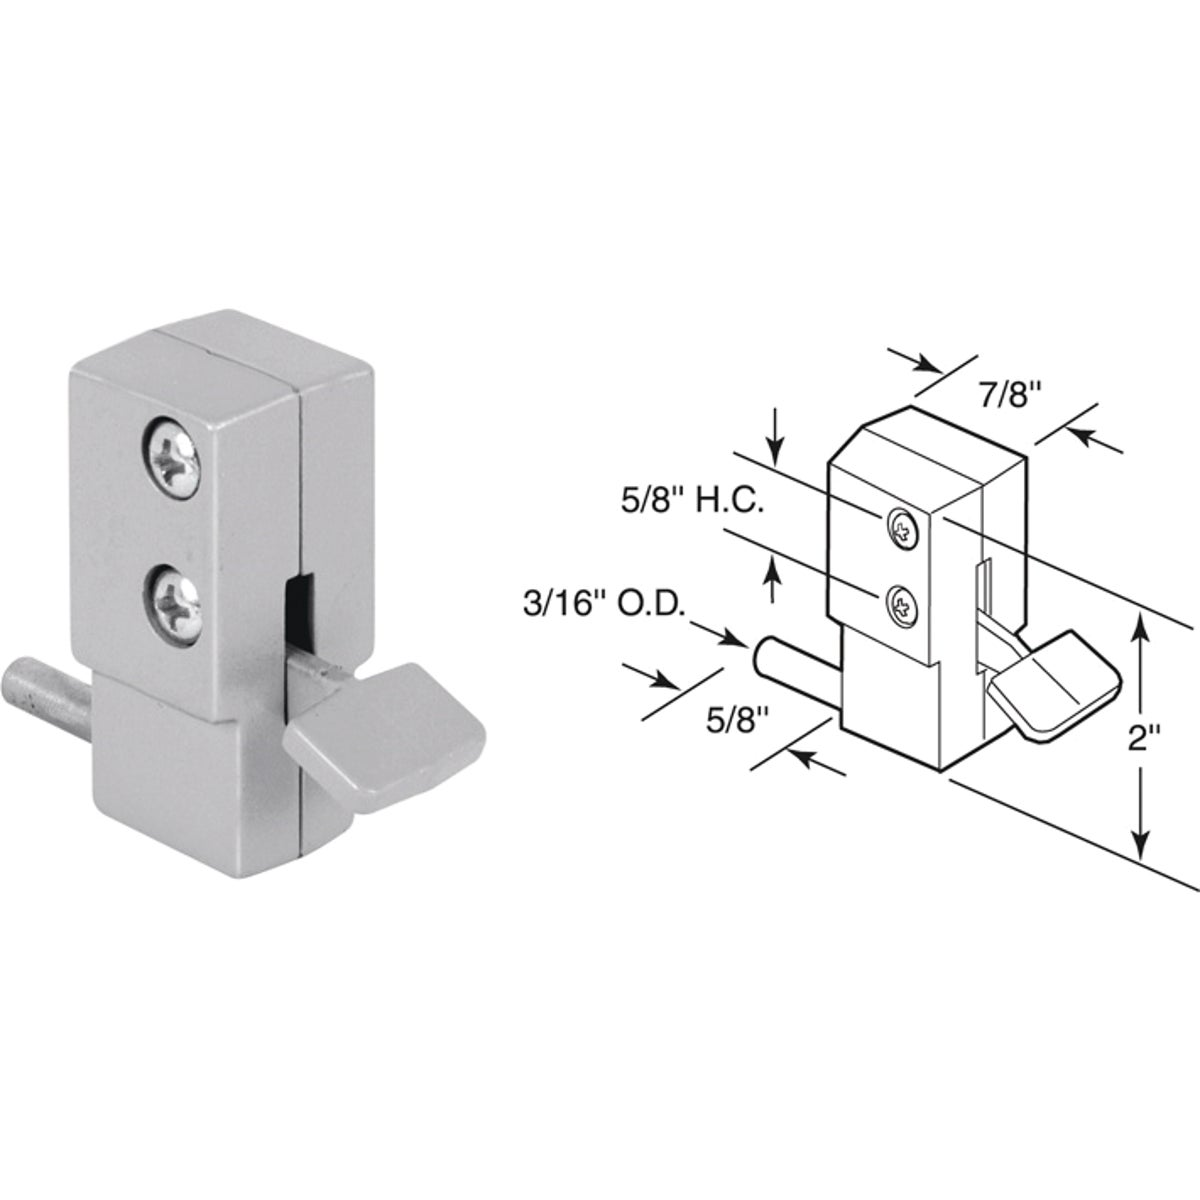 ALUM SLIDING DOOR LOCK - U 9877 by Prime Line Products